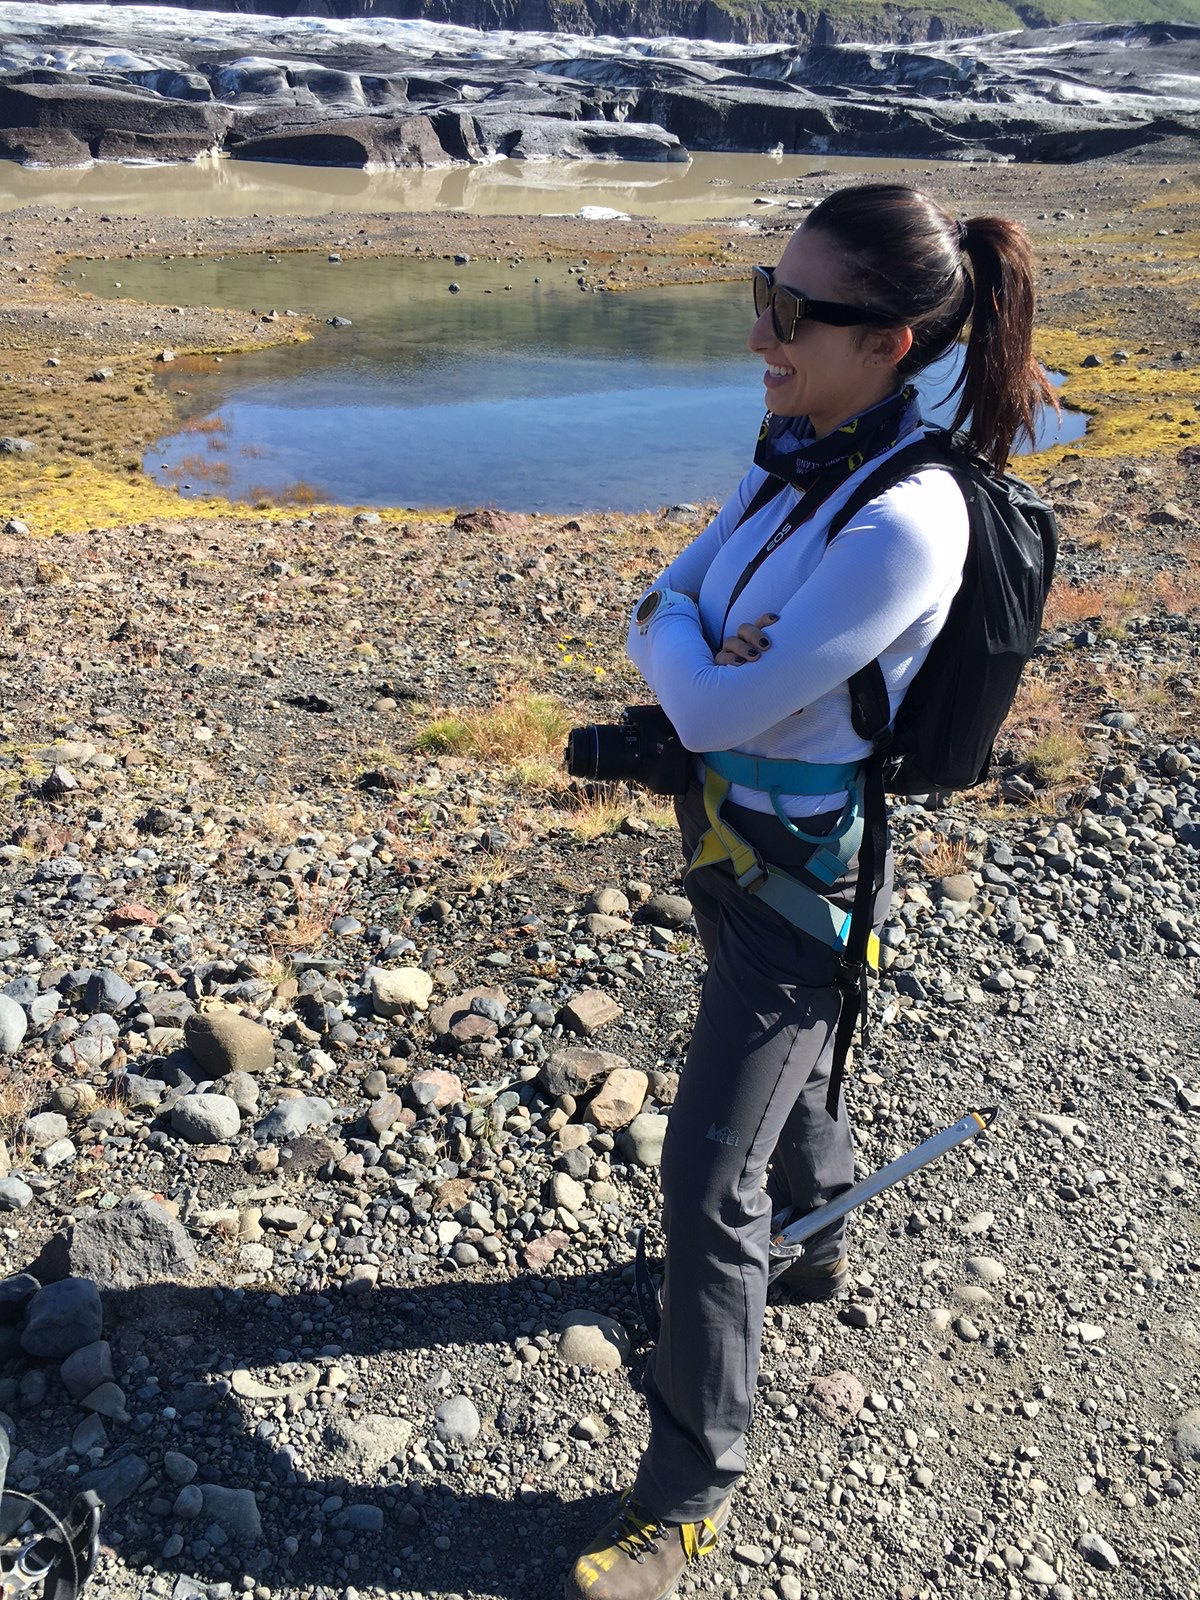 Eliza   Feed the Dietitian   Nutrition Fitness and Fashion for the Millennial   How to Travel and Stay Active - Iceland Adventures 2016